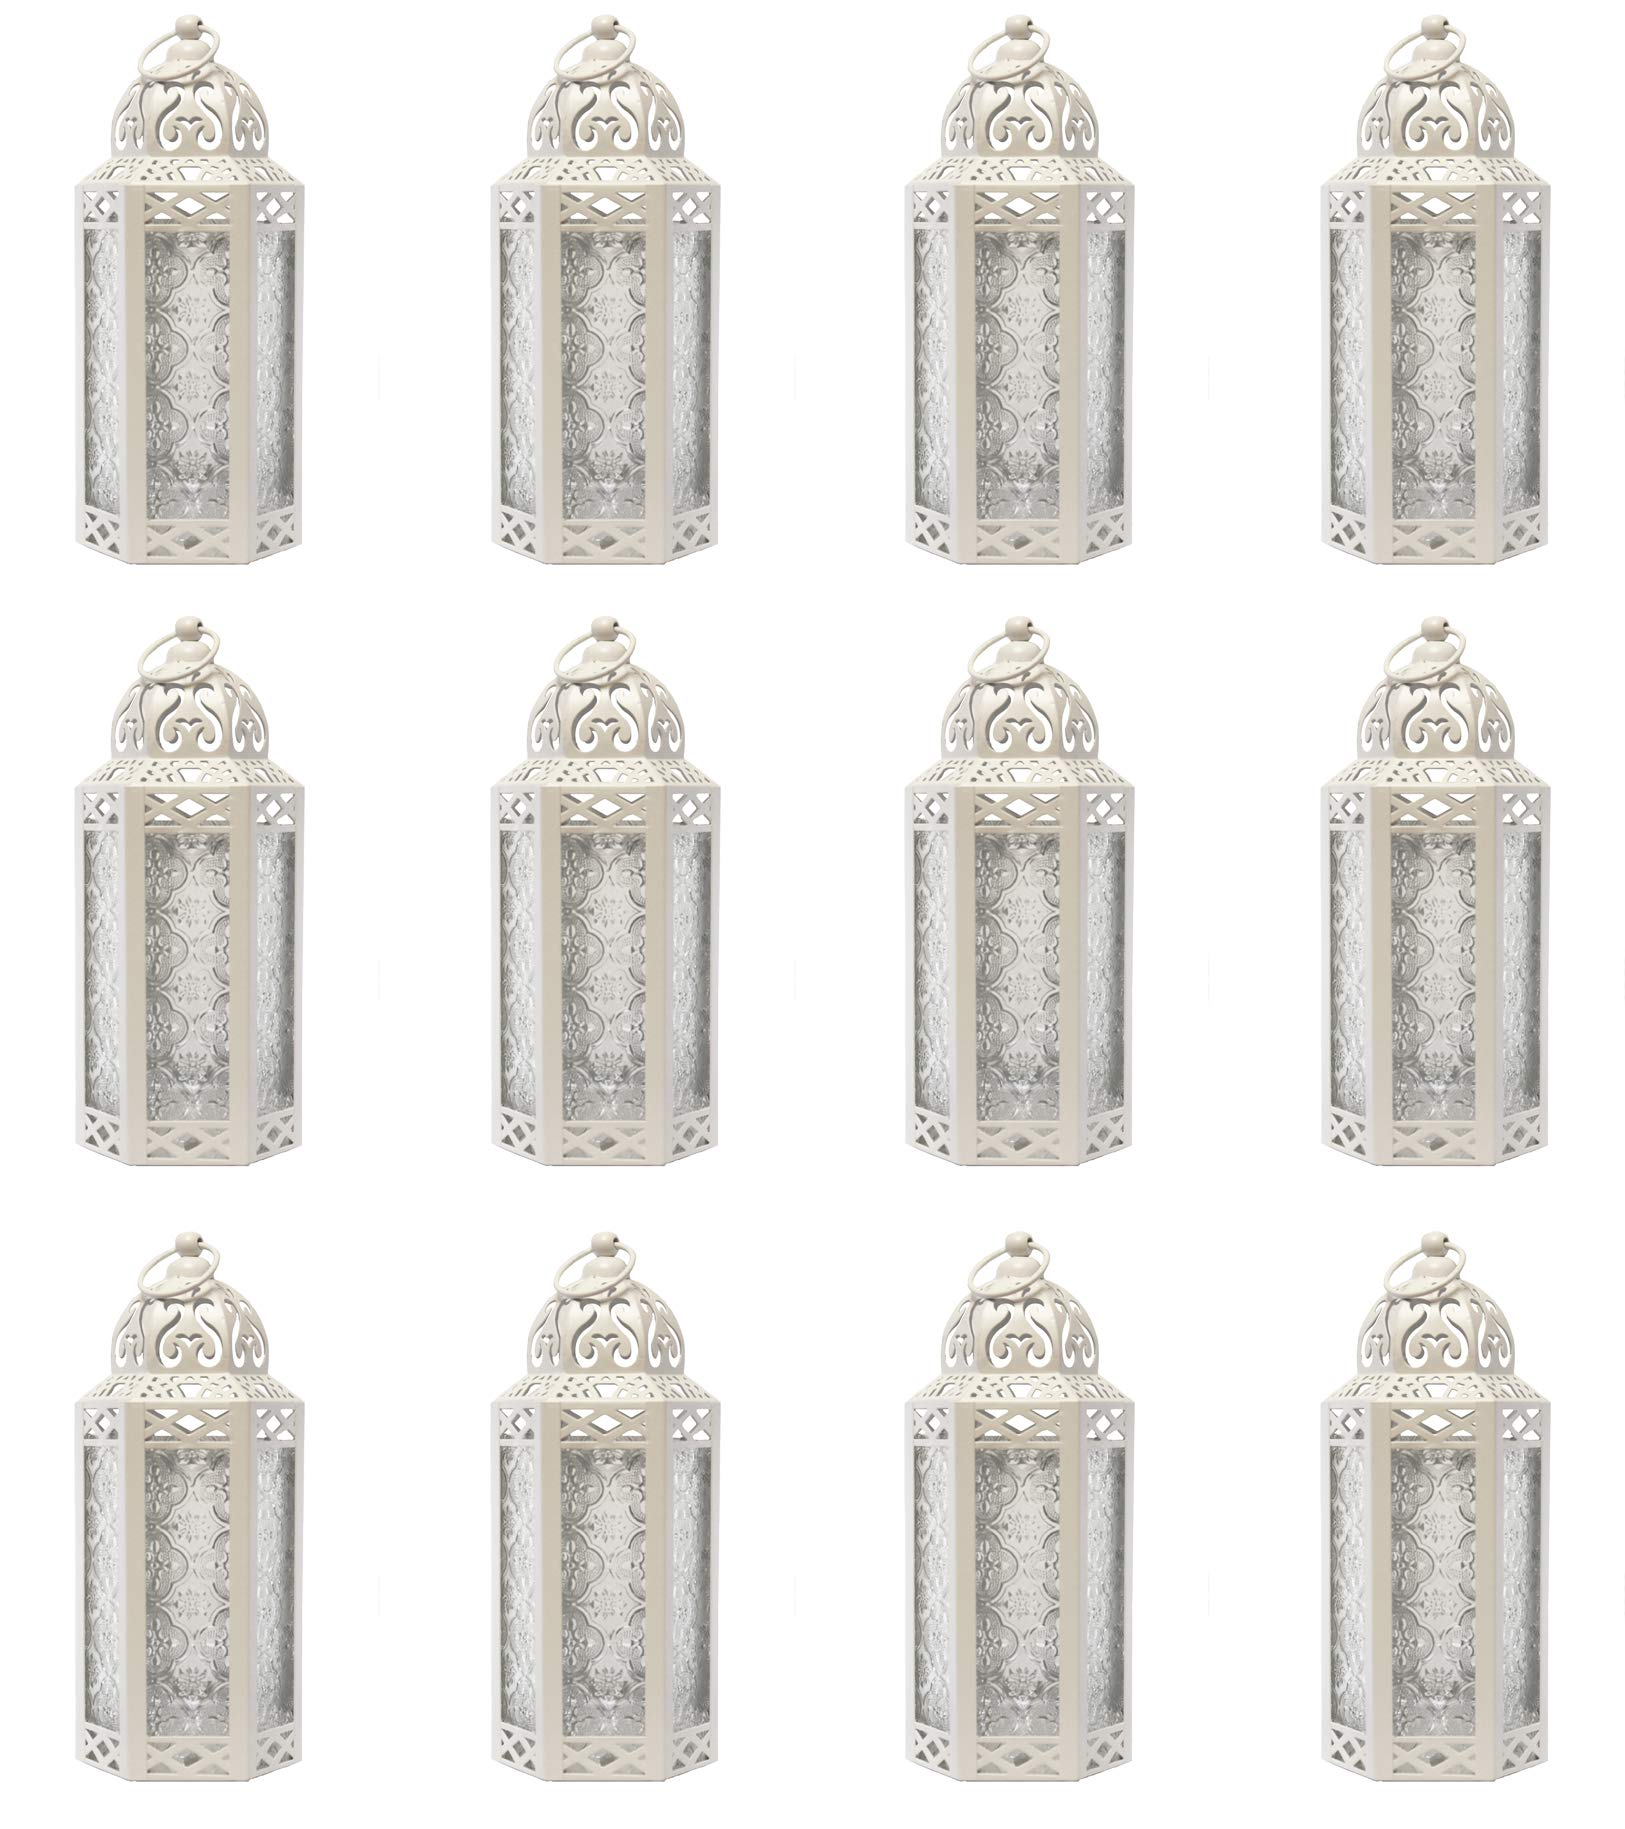 Moroccan Style Candle Lanterns in Bulk (Case of 12, White)